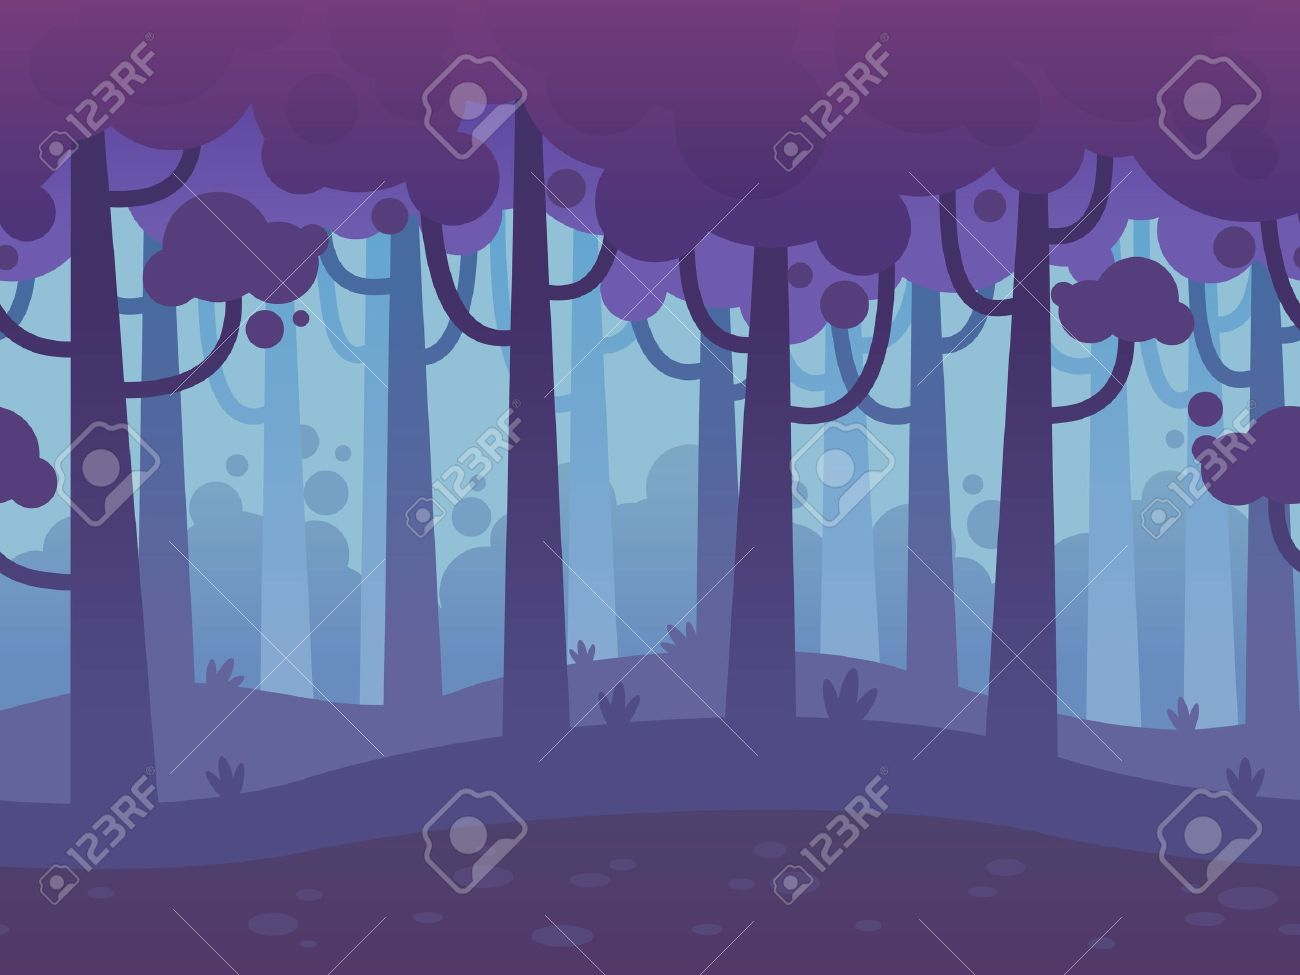 Game Seamless Horizontal Forest Background for side scrolling 2D games, action, adventure, hack and slash for PC computers, mobile apps and browsers - 51011213